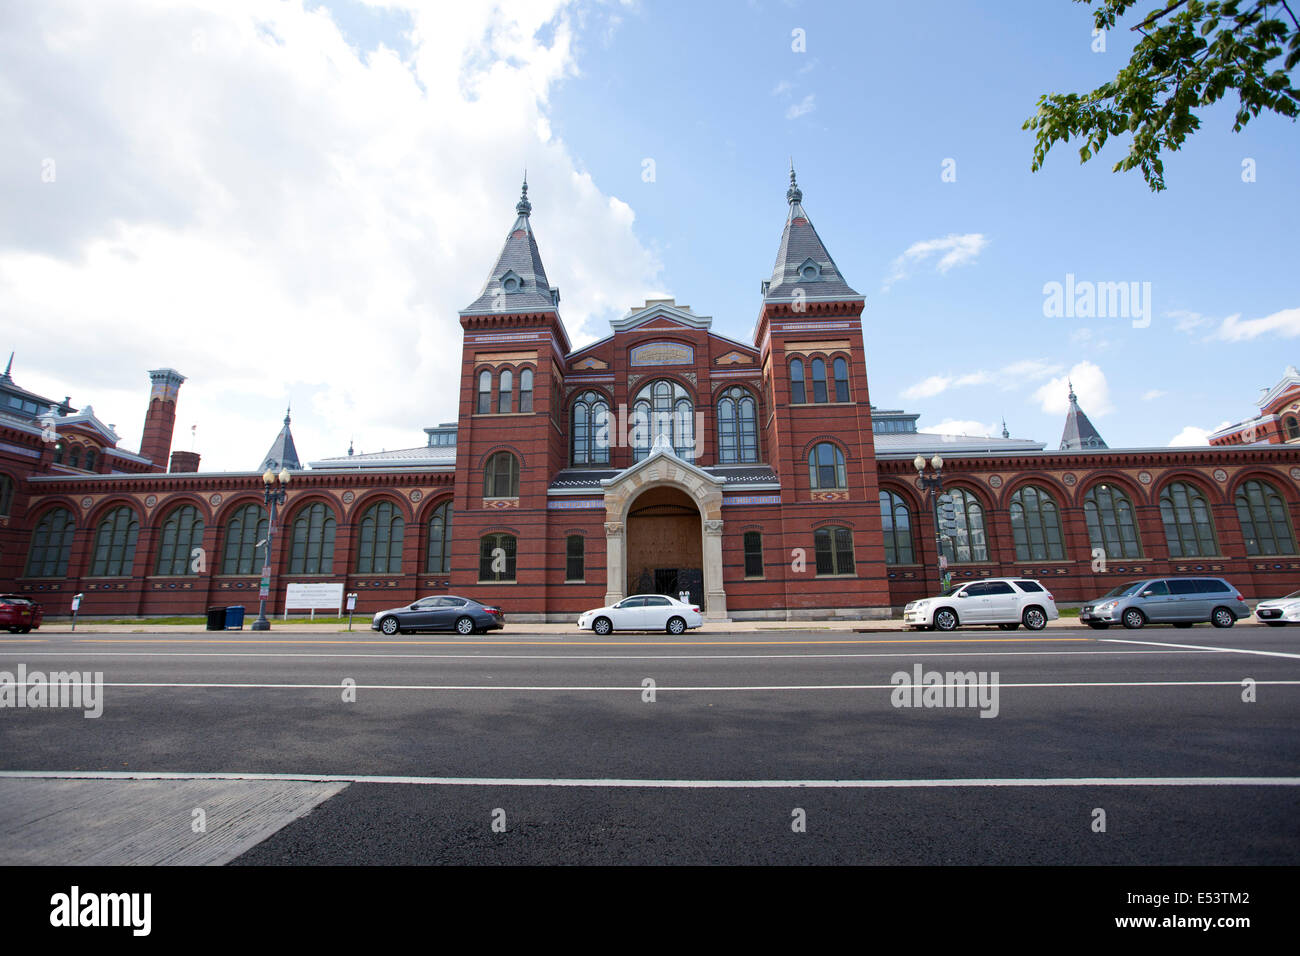 WASHINGTON D.C. - MAY 24, 2014: The Smithsonian National Museum Building was renamed the Arts and Industries Building - Stock Image